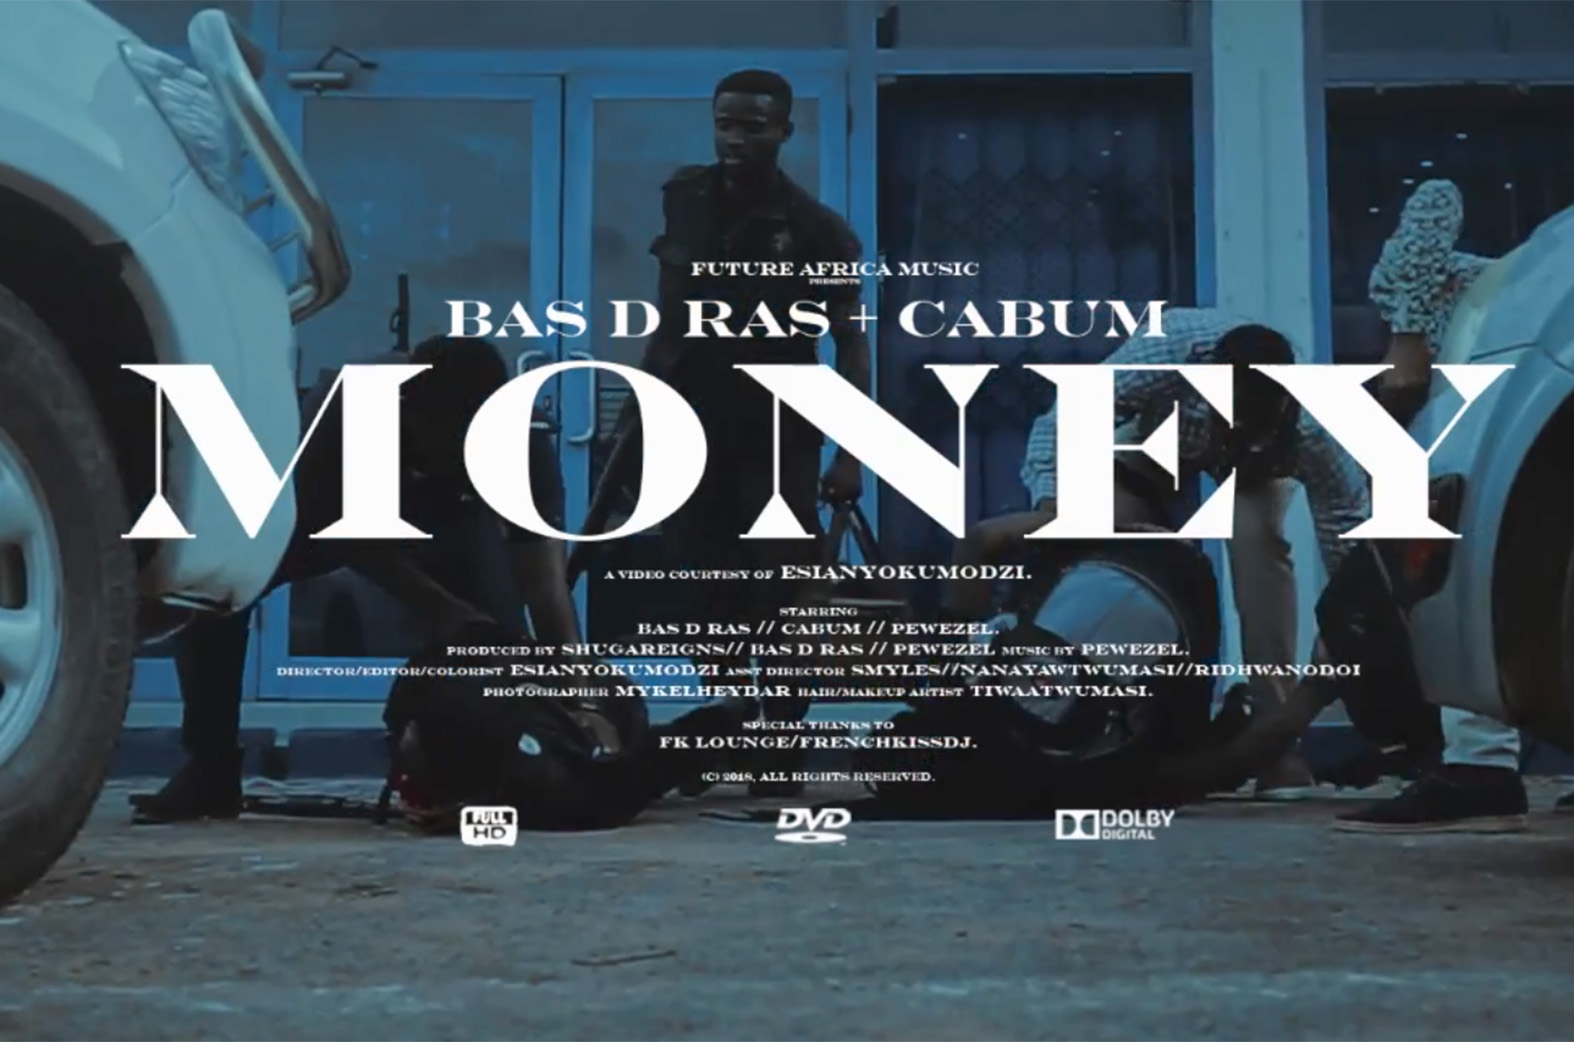 Video: Money by Bas D Ras feat. Cabum